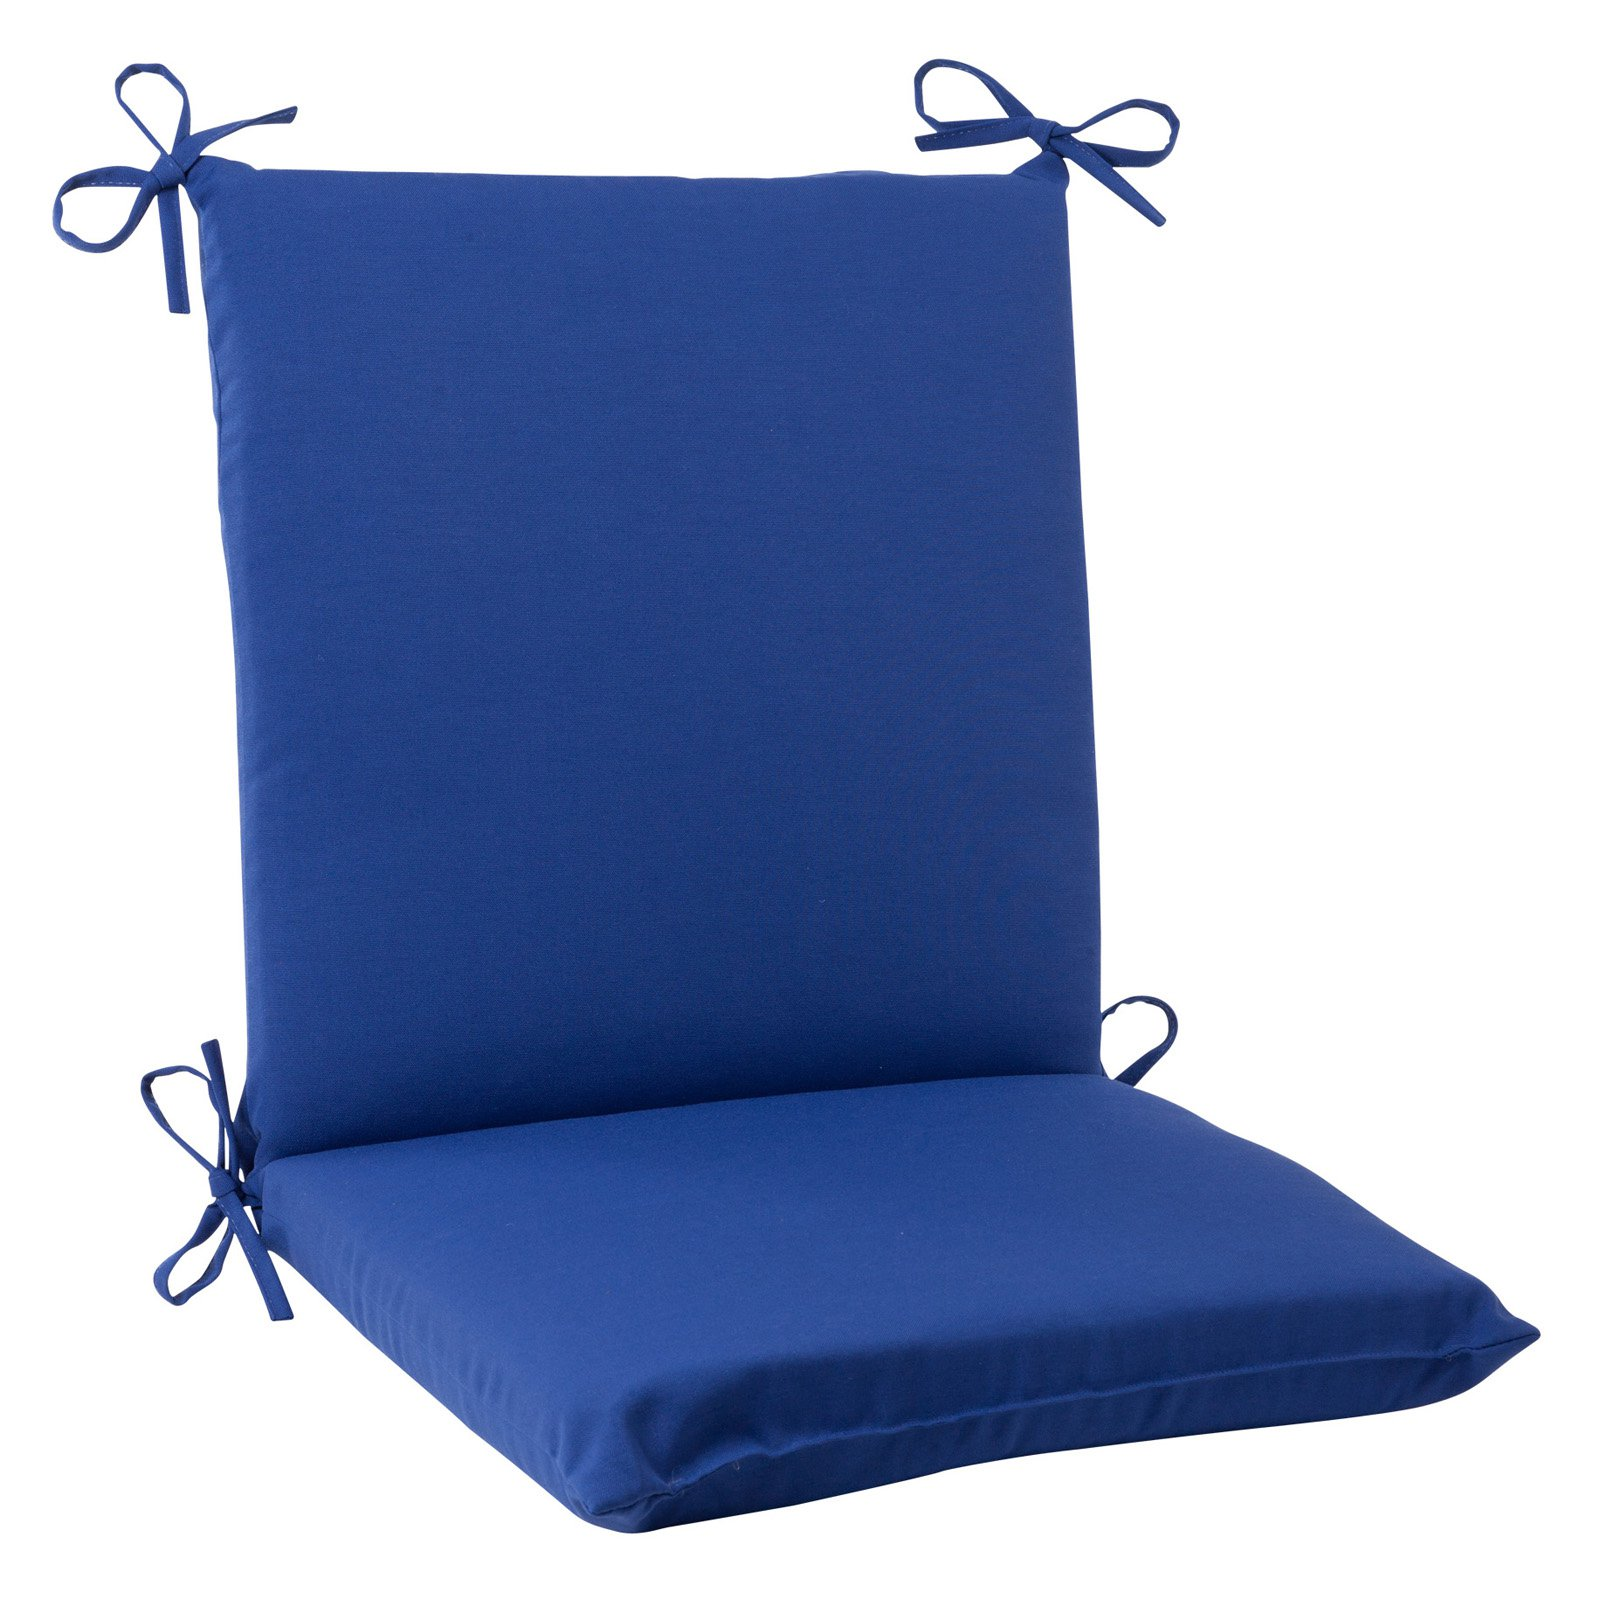 Pillow Perfect Outdoor/ Indoor Fresco Navy Squared Corners Chair Cushion